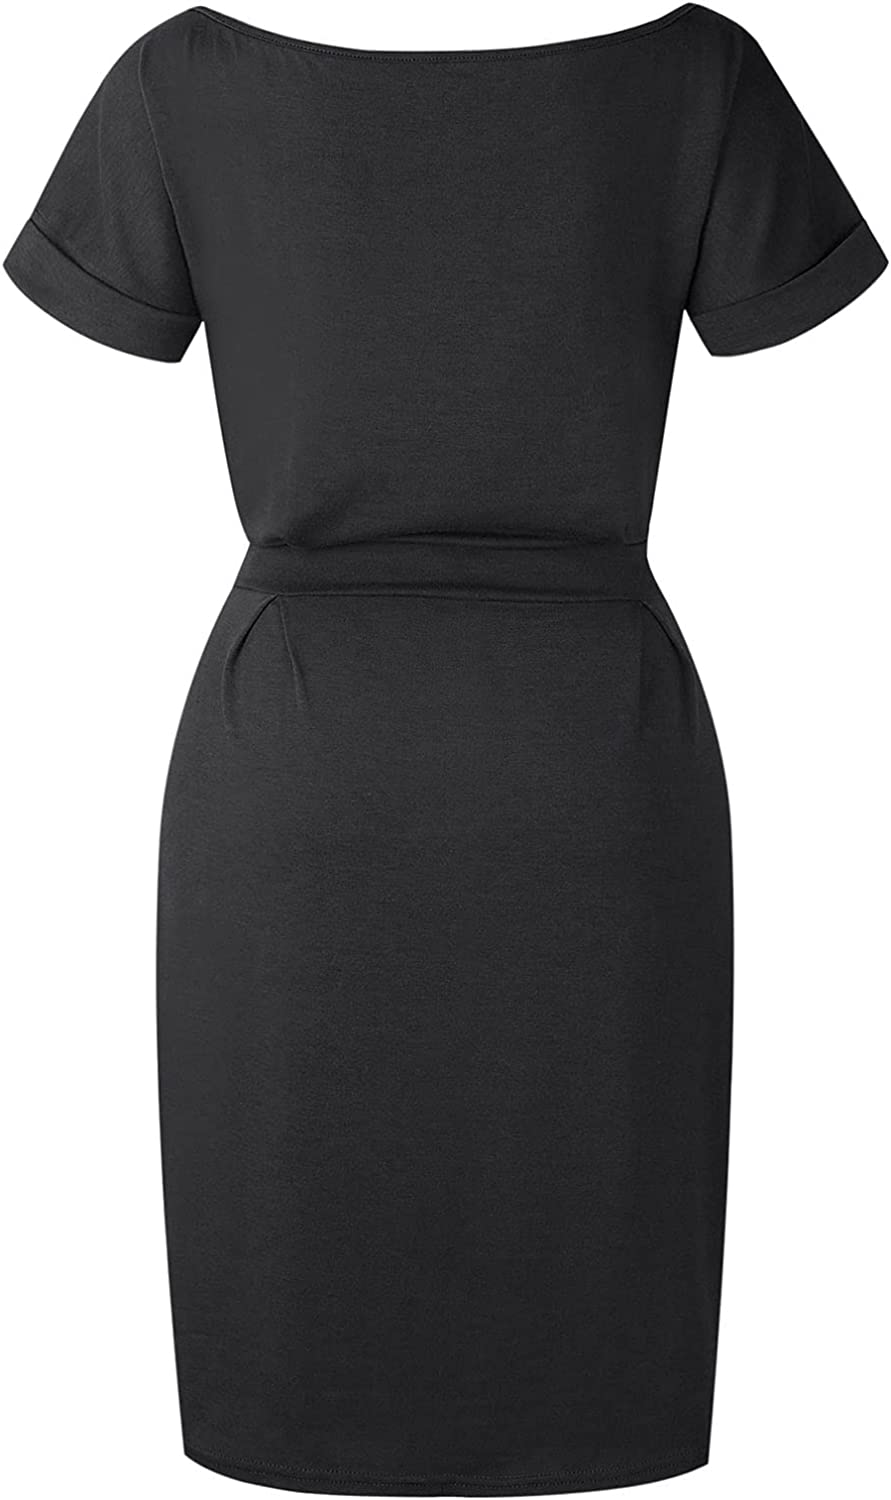 Womens Classic Boatneck Dresses Slim Fit Solid Business Office Cocktail Pencil Professional Dress with Belt